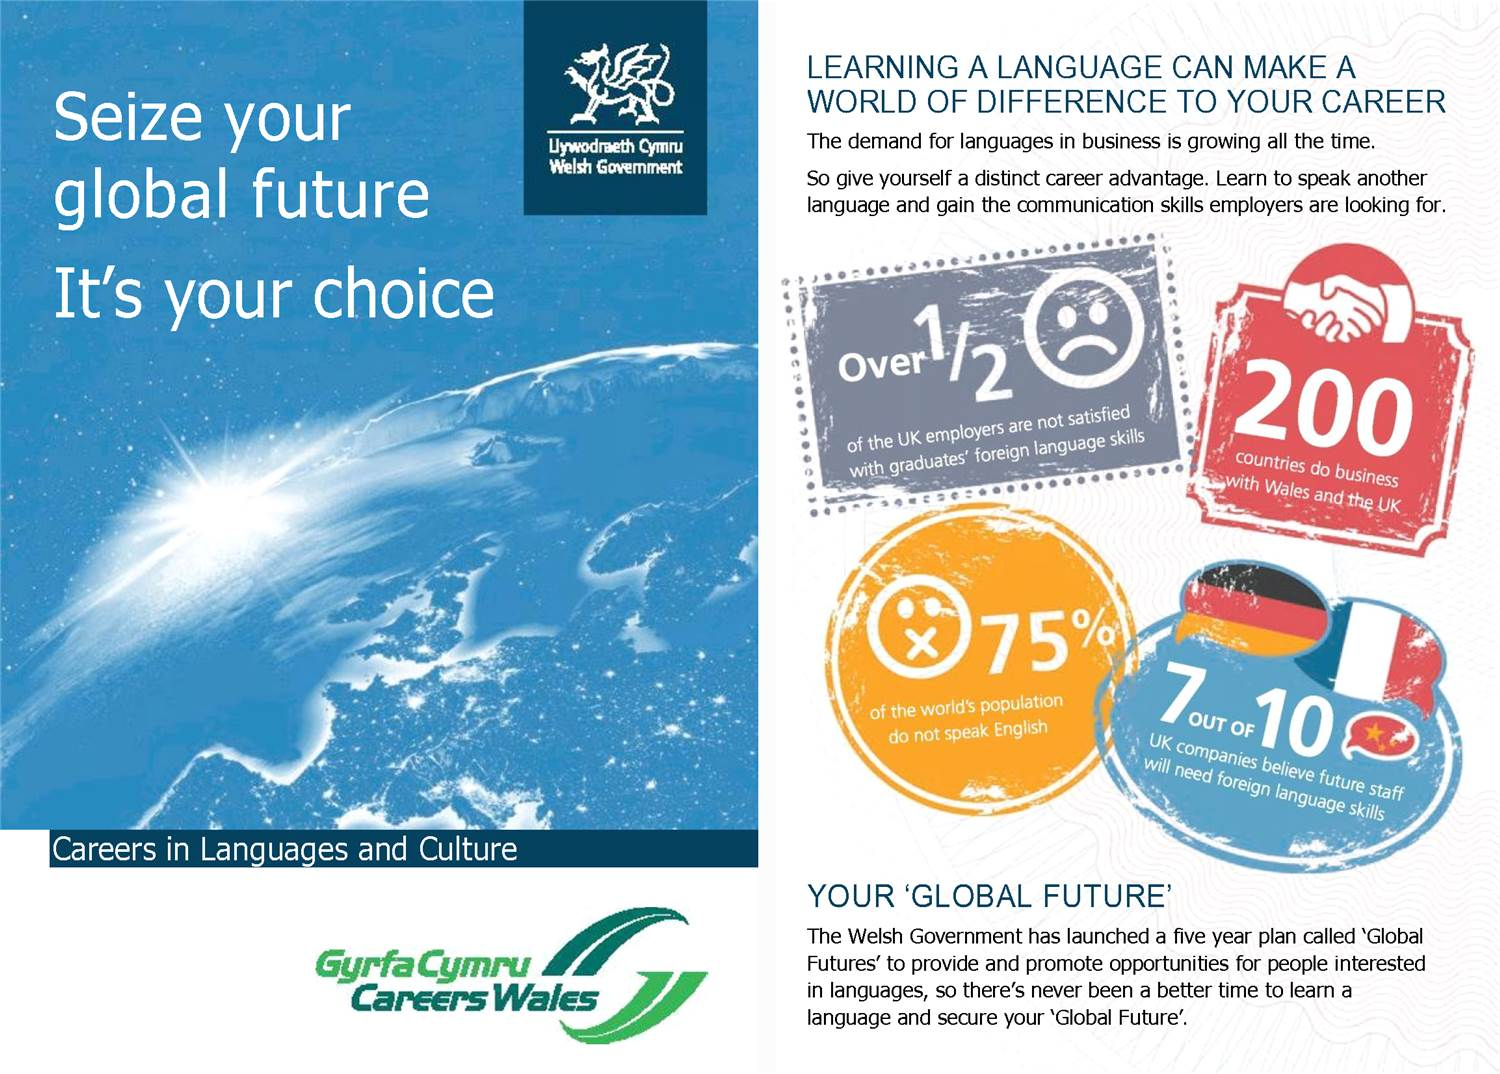 Seize Your Global Future – It's Your Choice